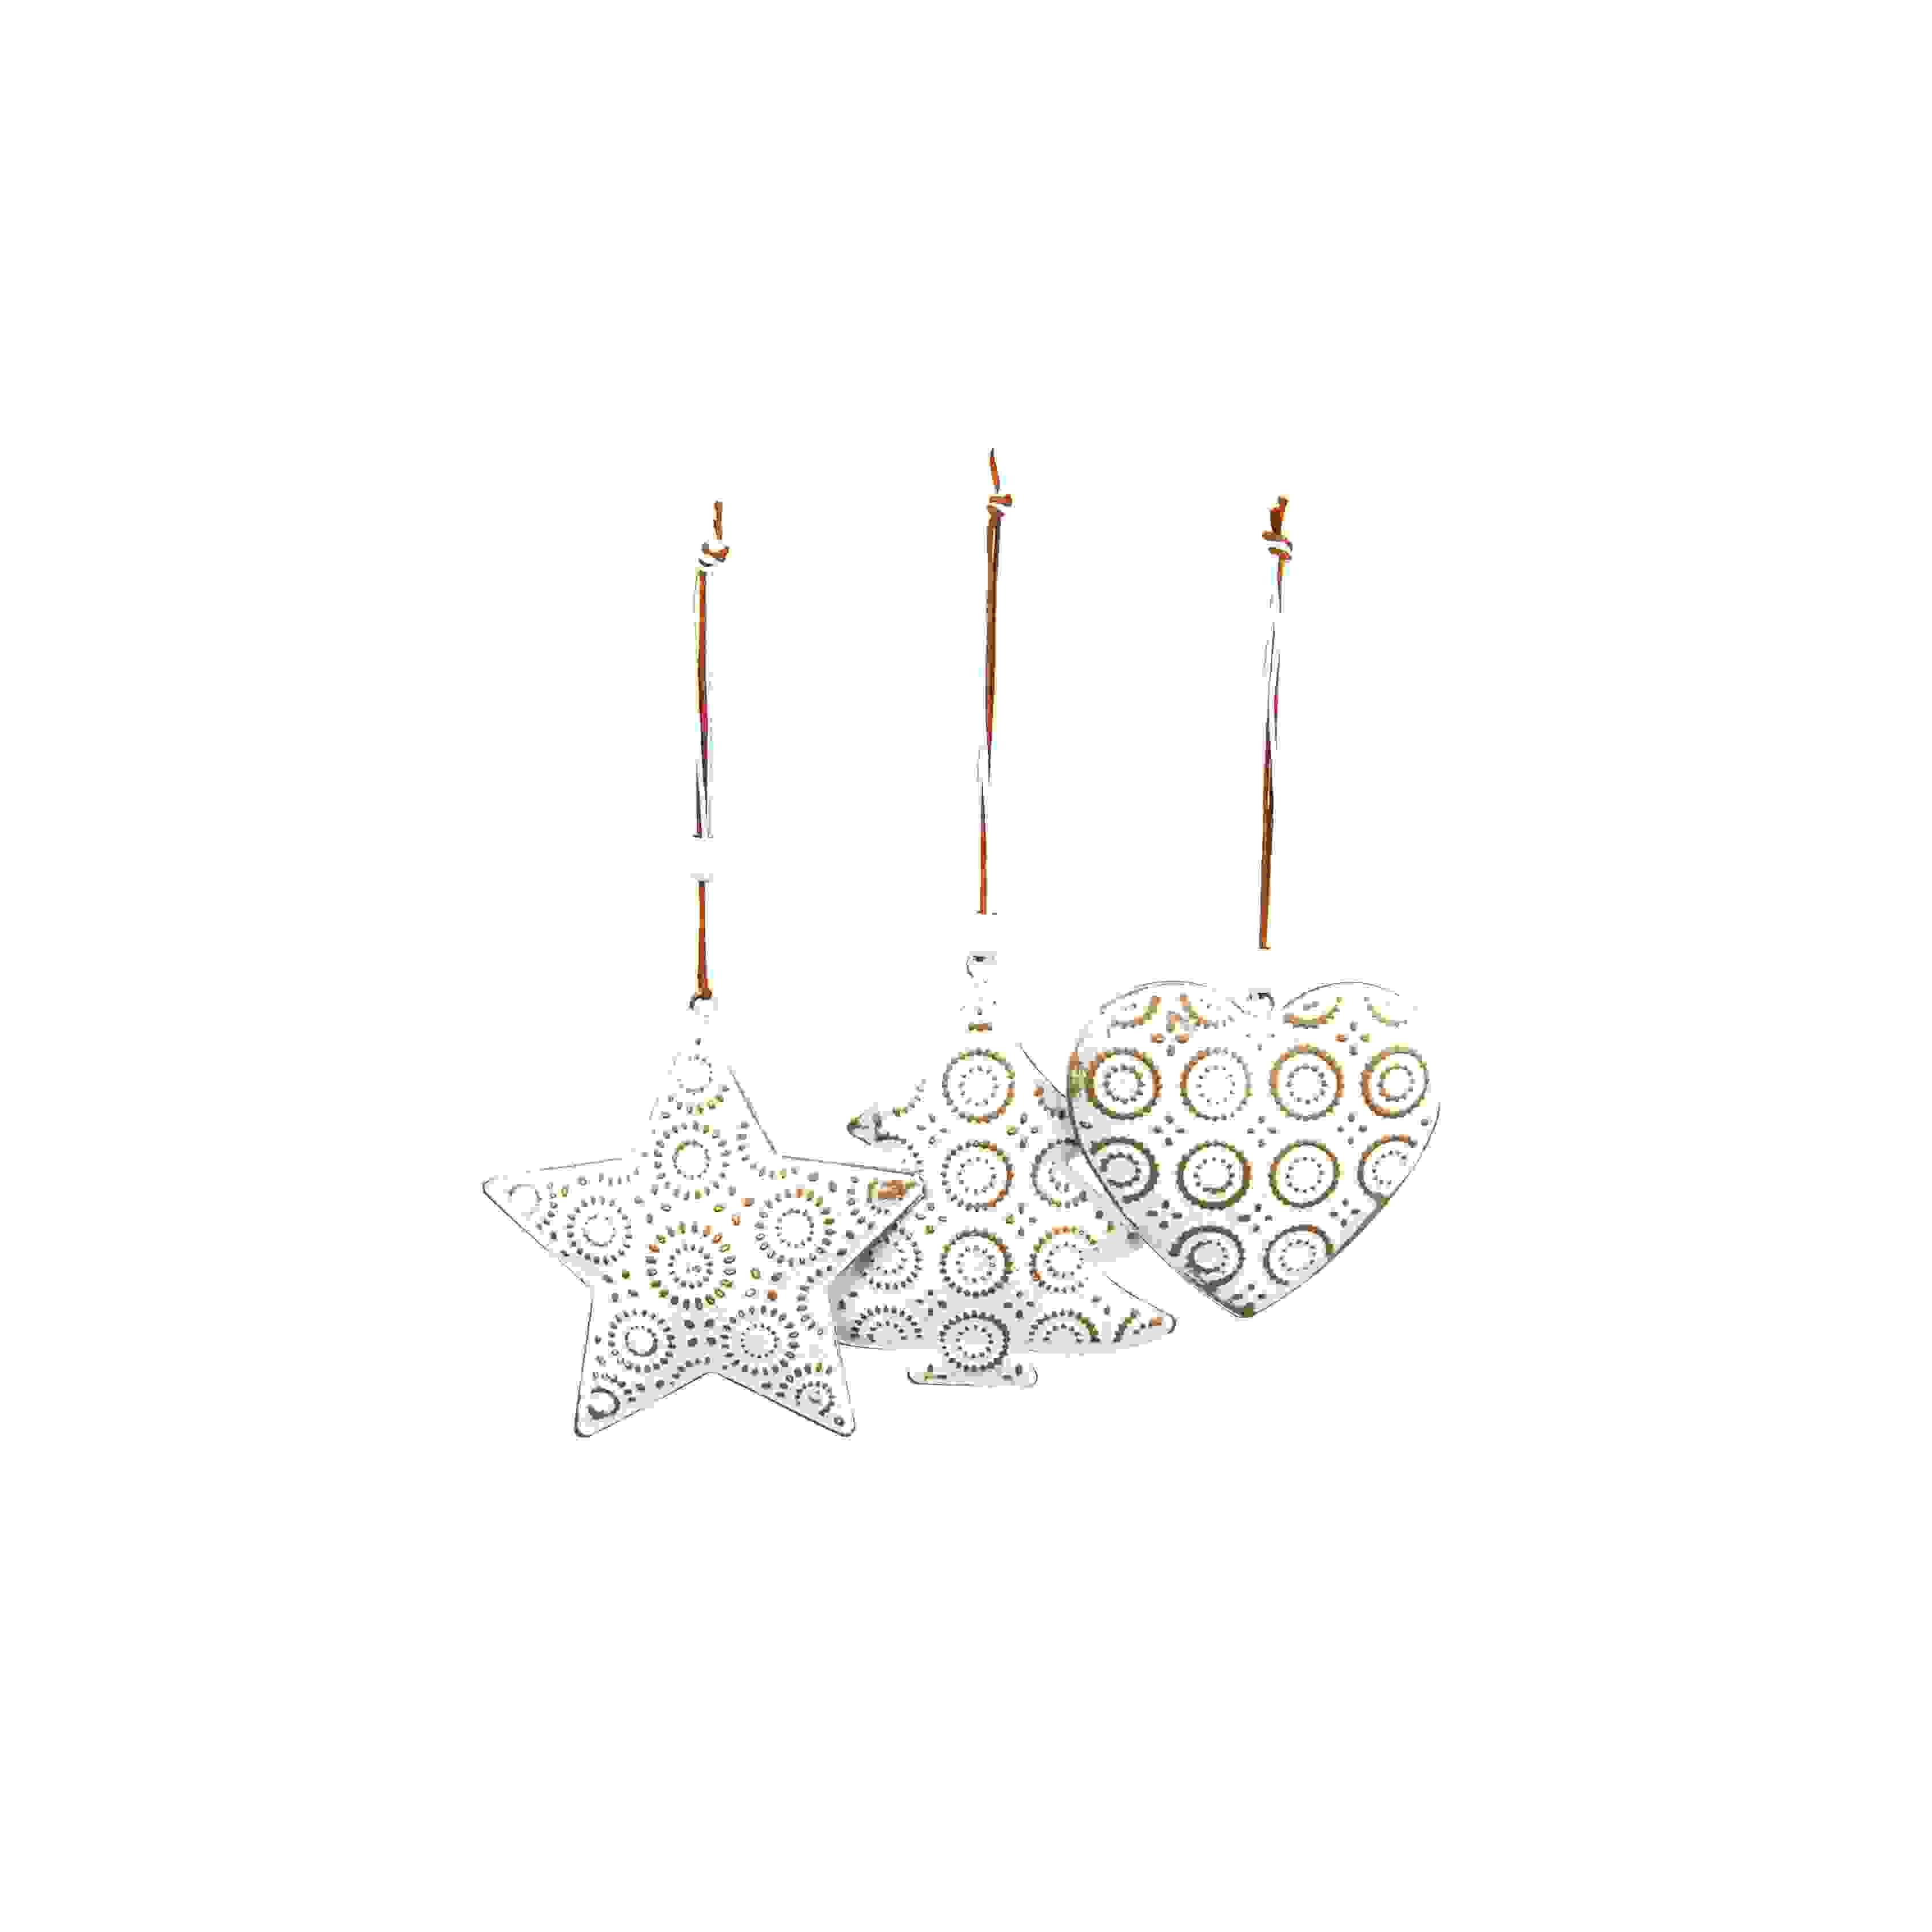 HANG. WHITE METAL DECS